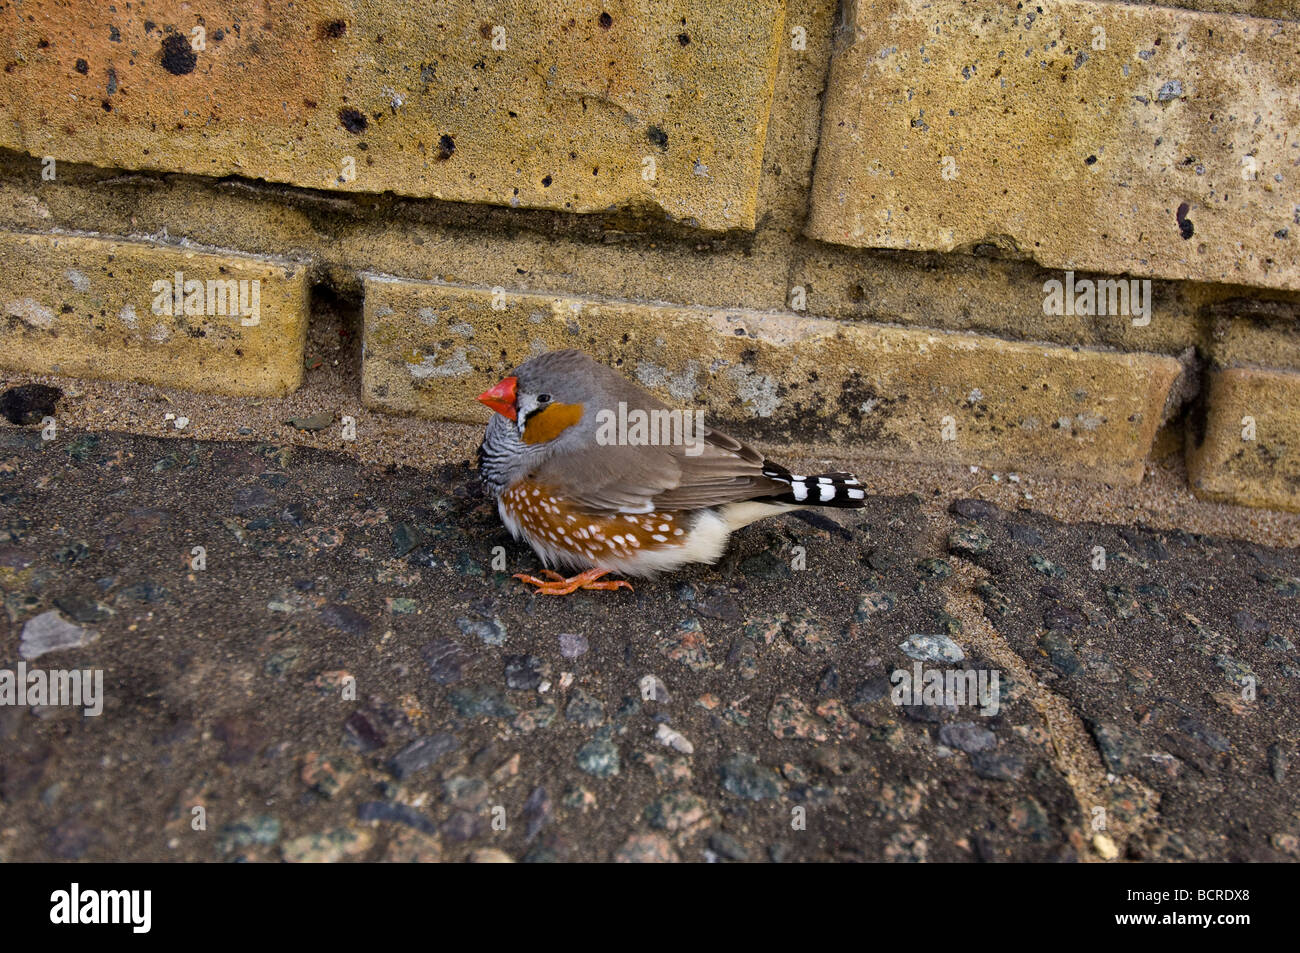 An Australian Zebra Finch living wild in the UK. It must have escaped from an aviary or cage. - Stock Image